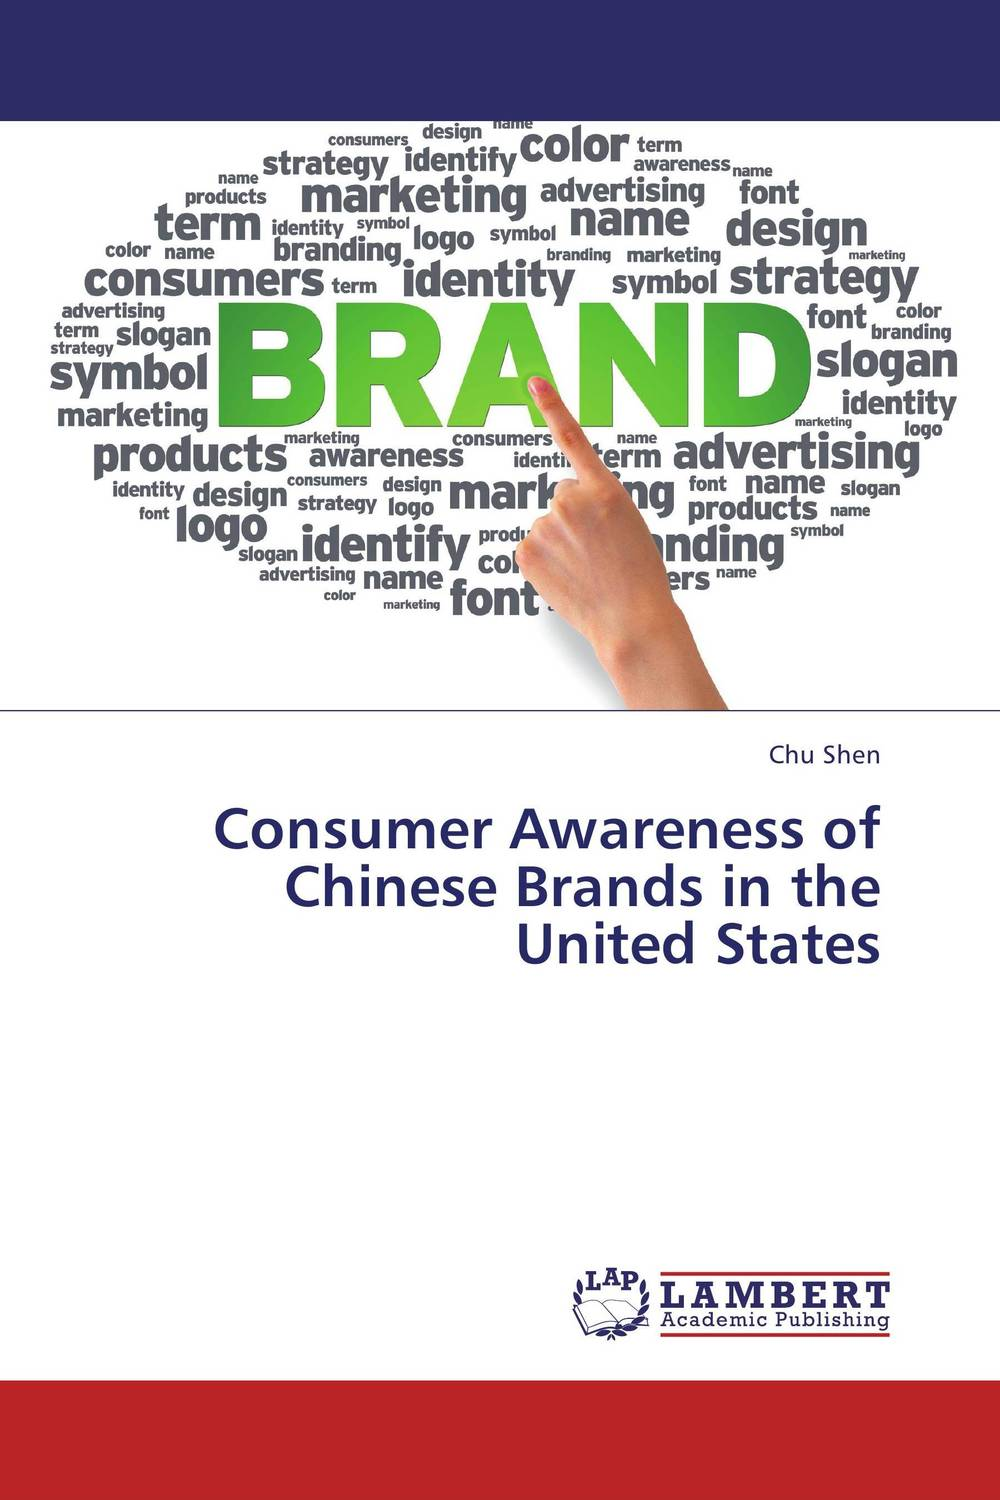 Consumer Awareness of Chinese Brands in the United States